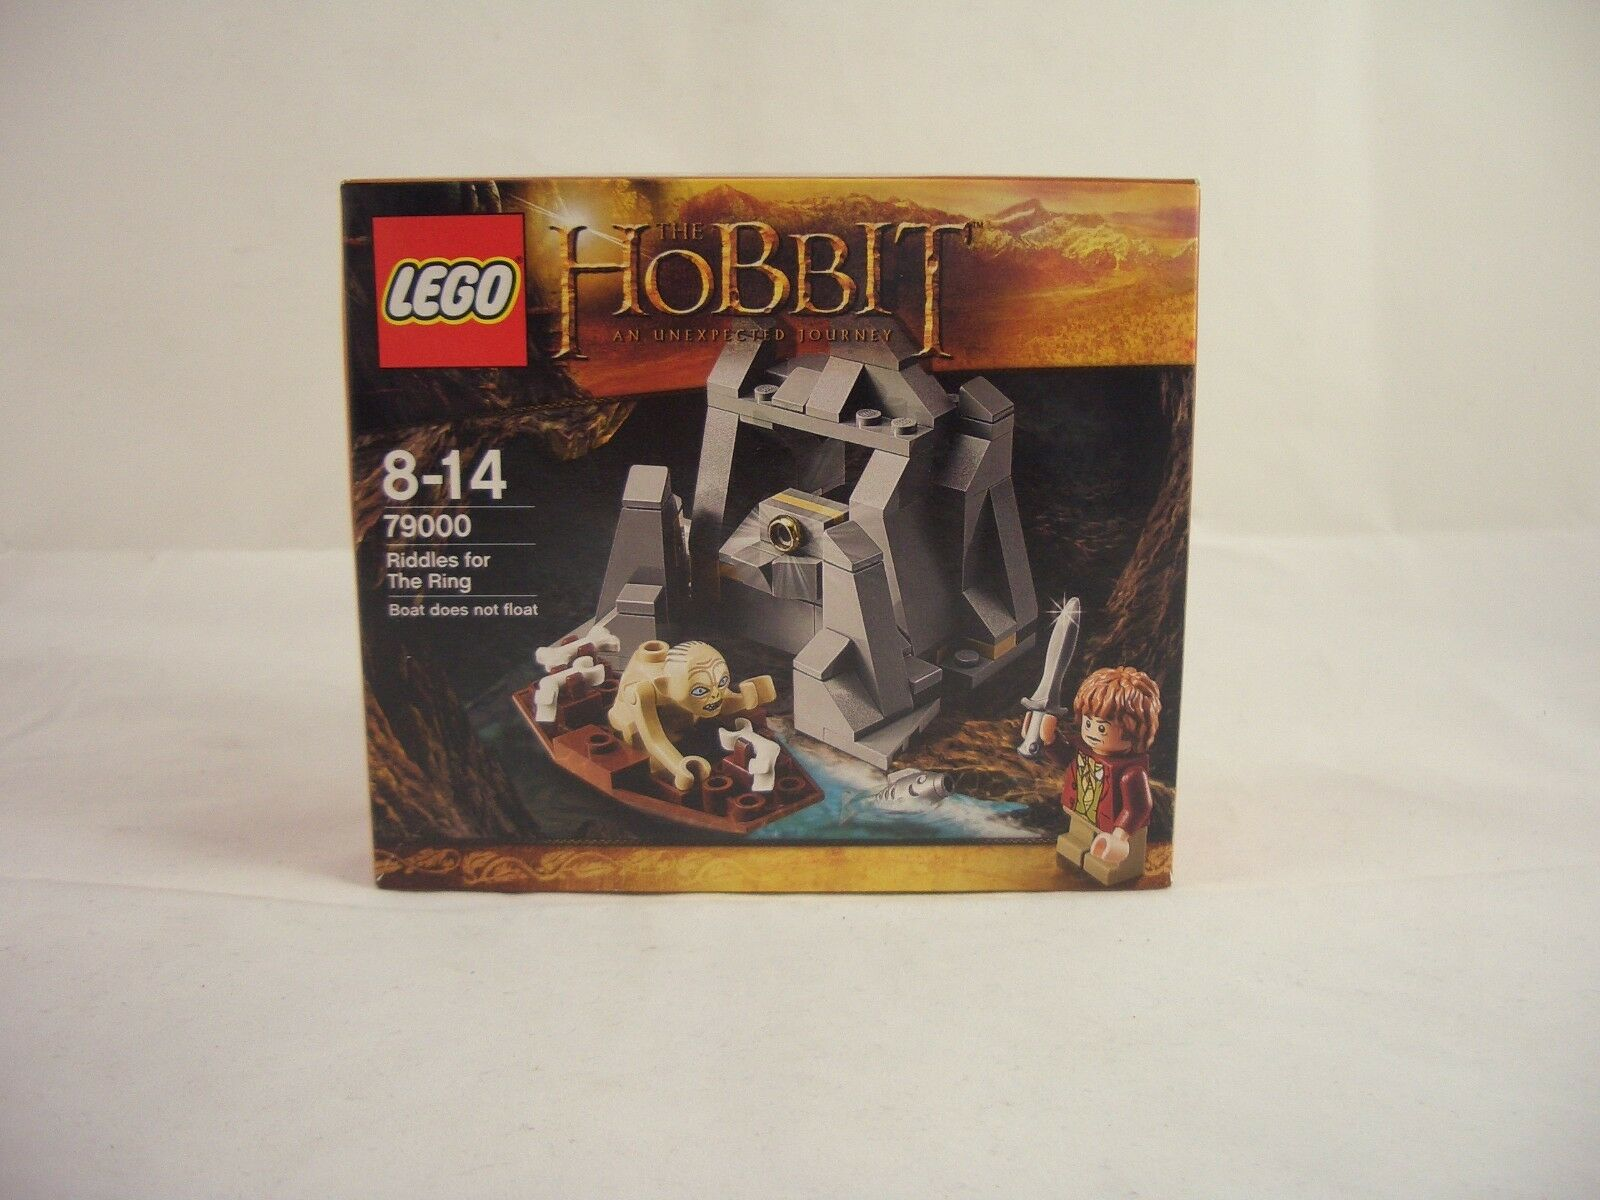 LEGO The Hobbit 79000 Riddles for the Ring New/Sealed